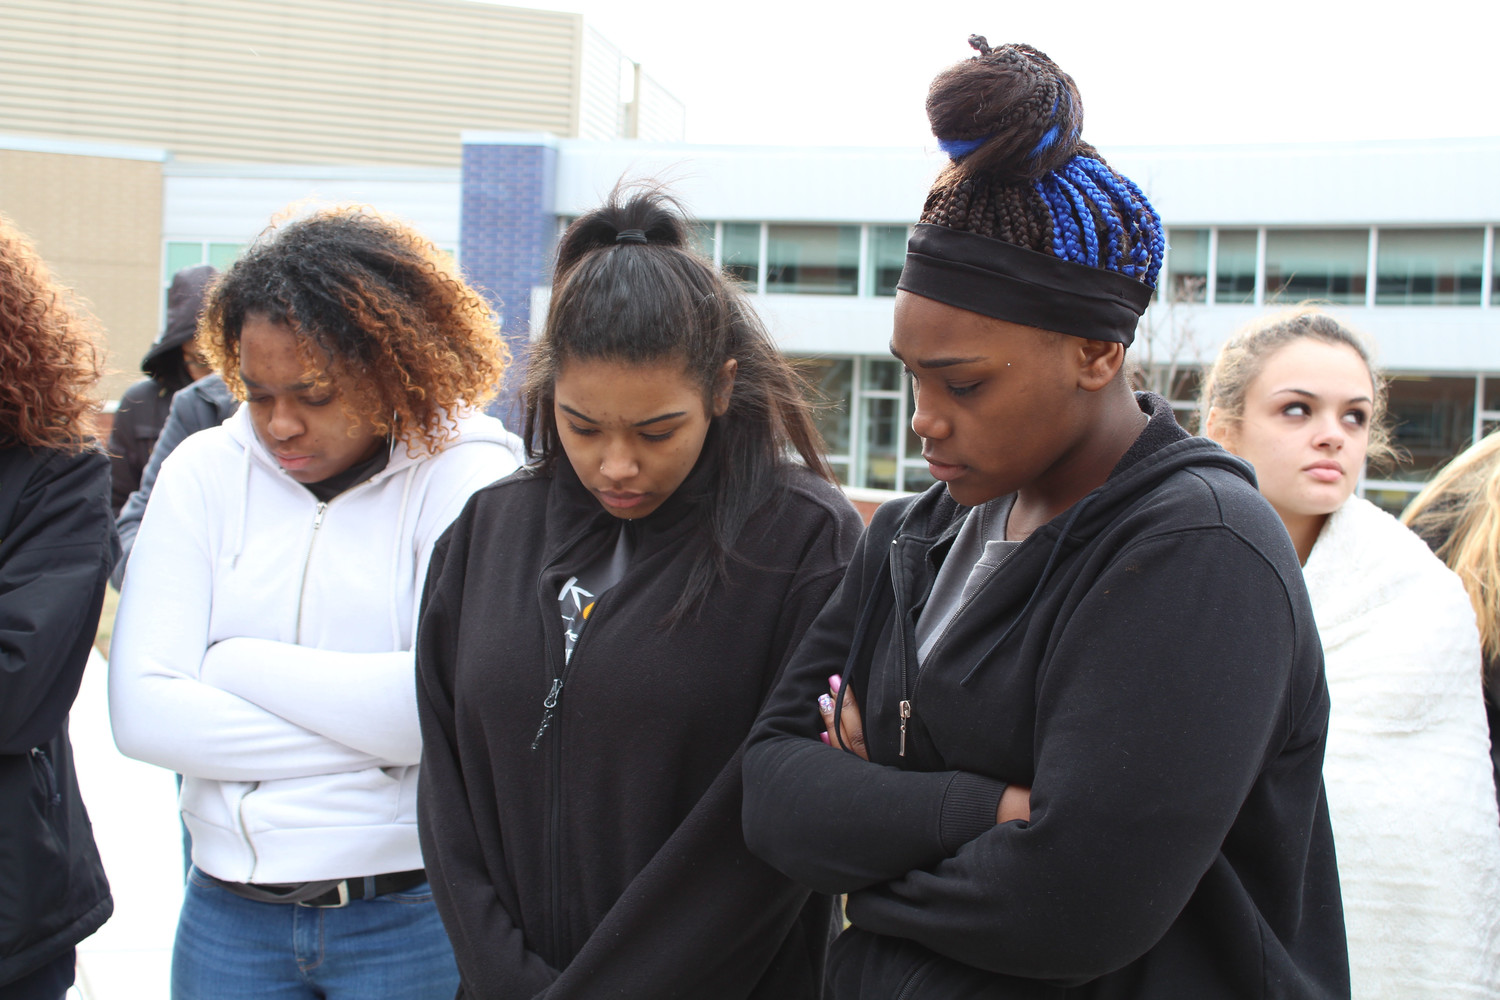 Juniors  Jam'esha Thomas-McDonald and Kashea Brown participated in the moment of silence.